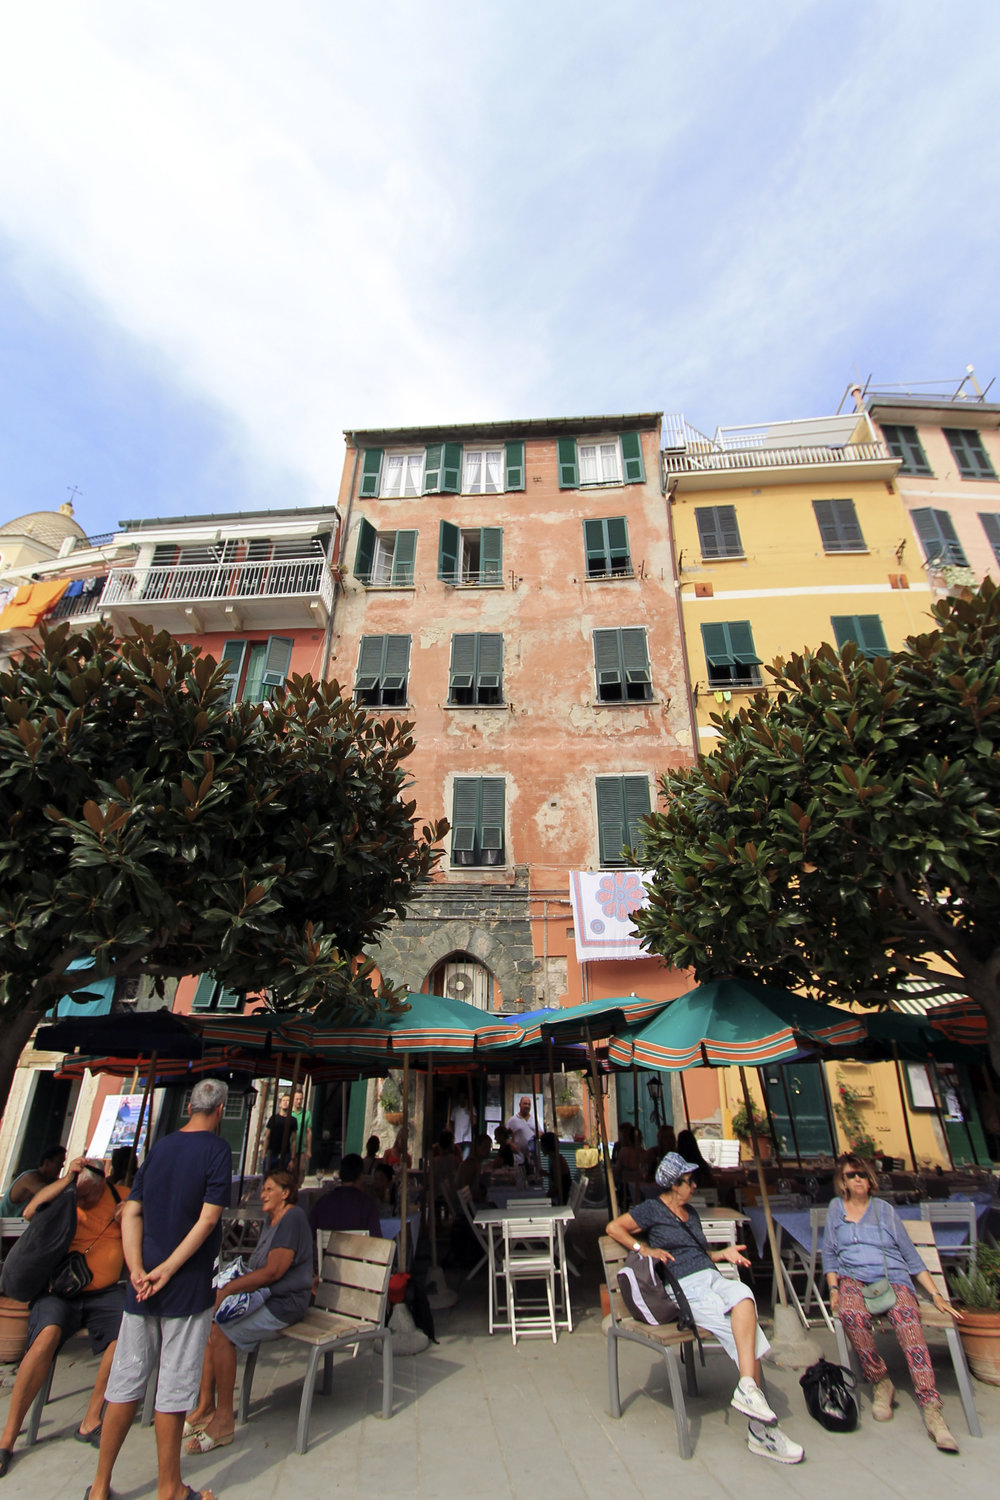 vernazza cinque terre square italy buildings colourful.jpg